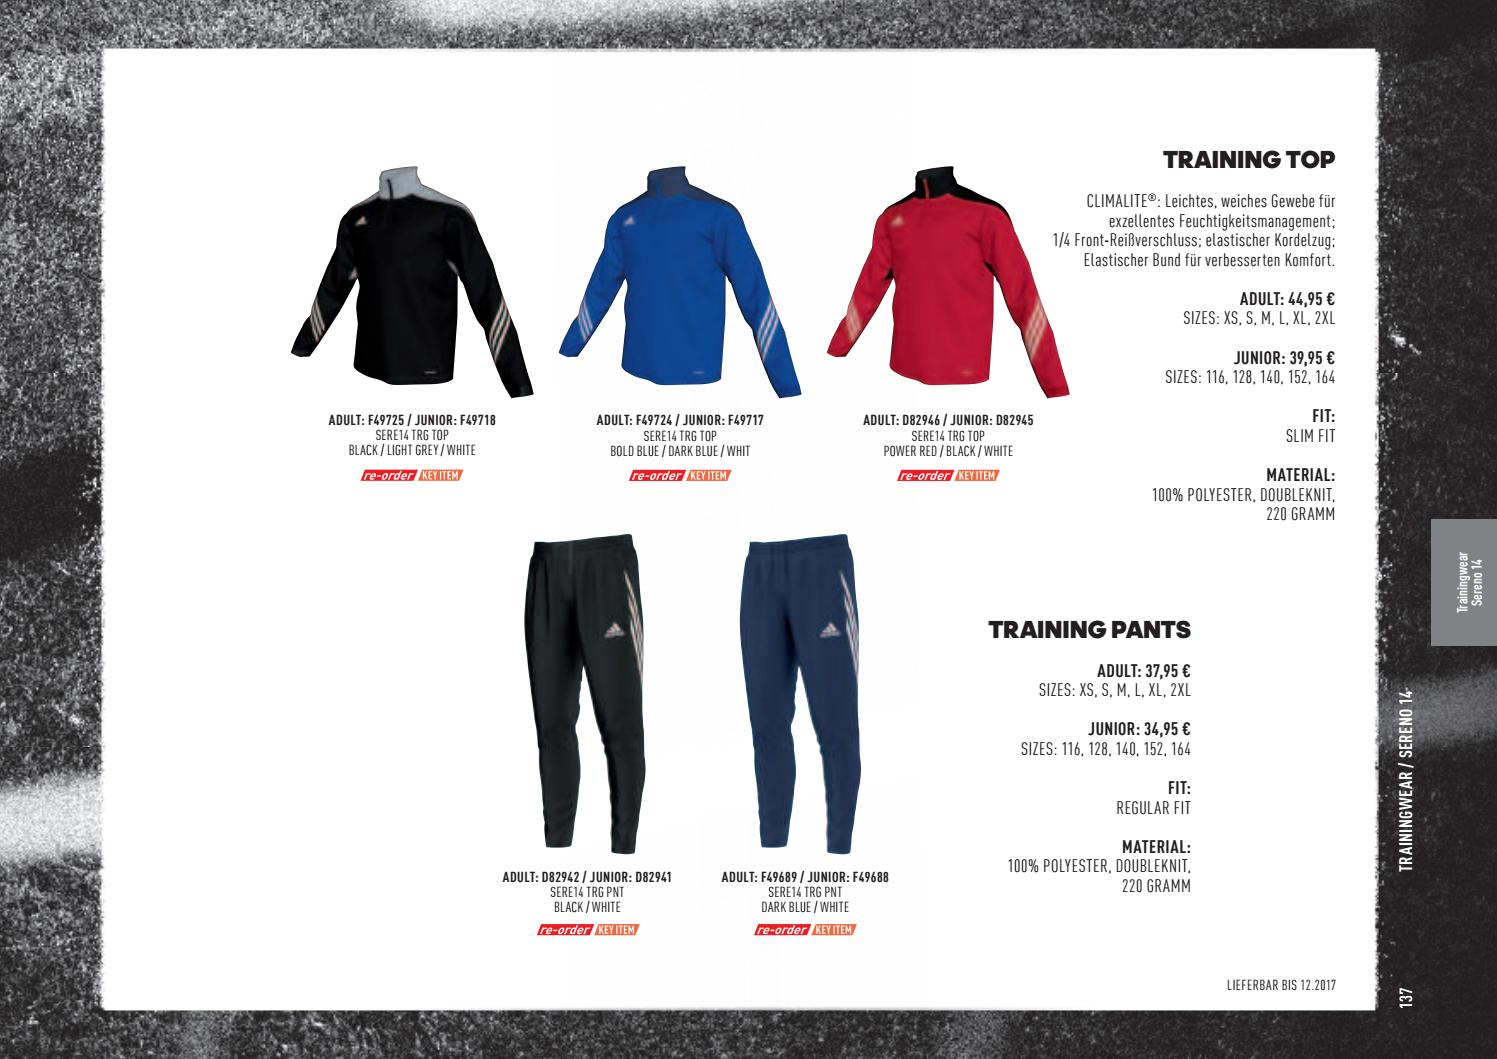 Adidas Teamsport Katalog 20172018 by Hofbauer Teamsport